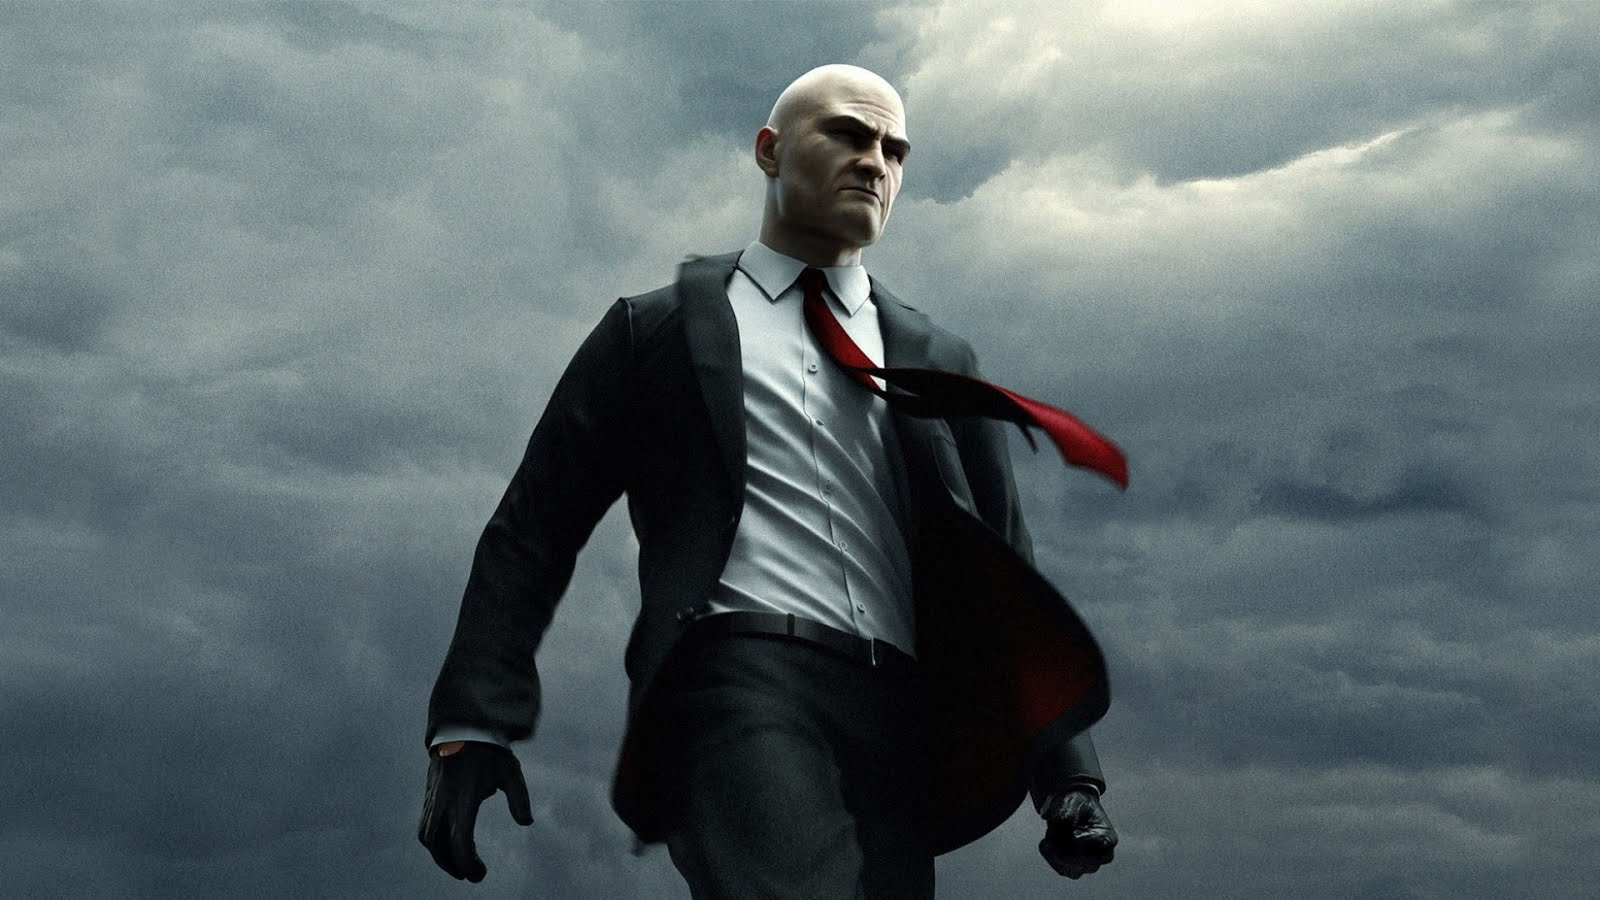 Hitman HD & Widescreen Wallpaper 0.833534178583187